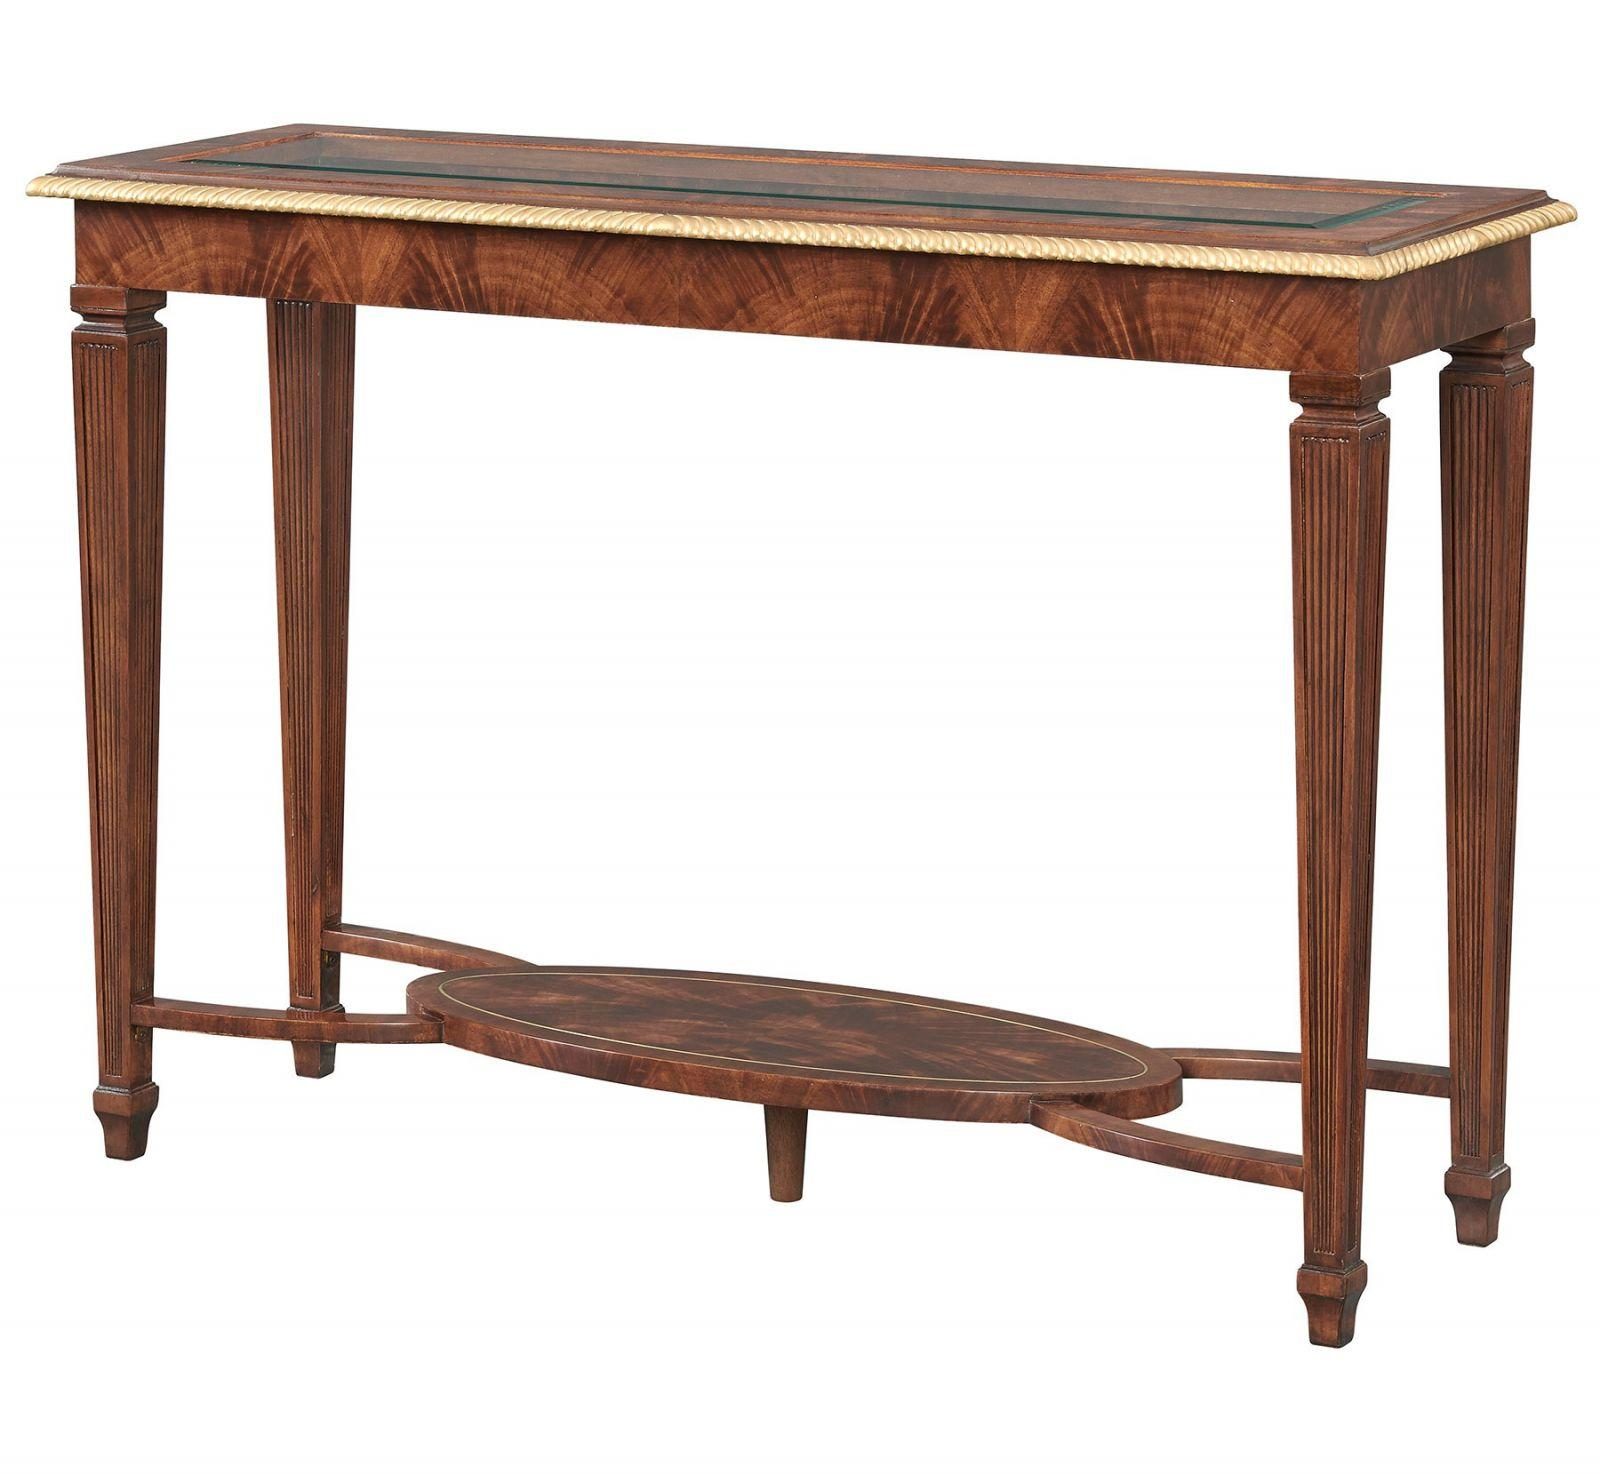 Mahogany console table with glass top